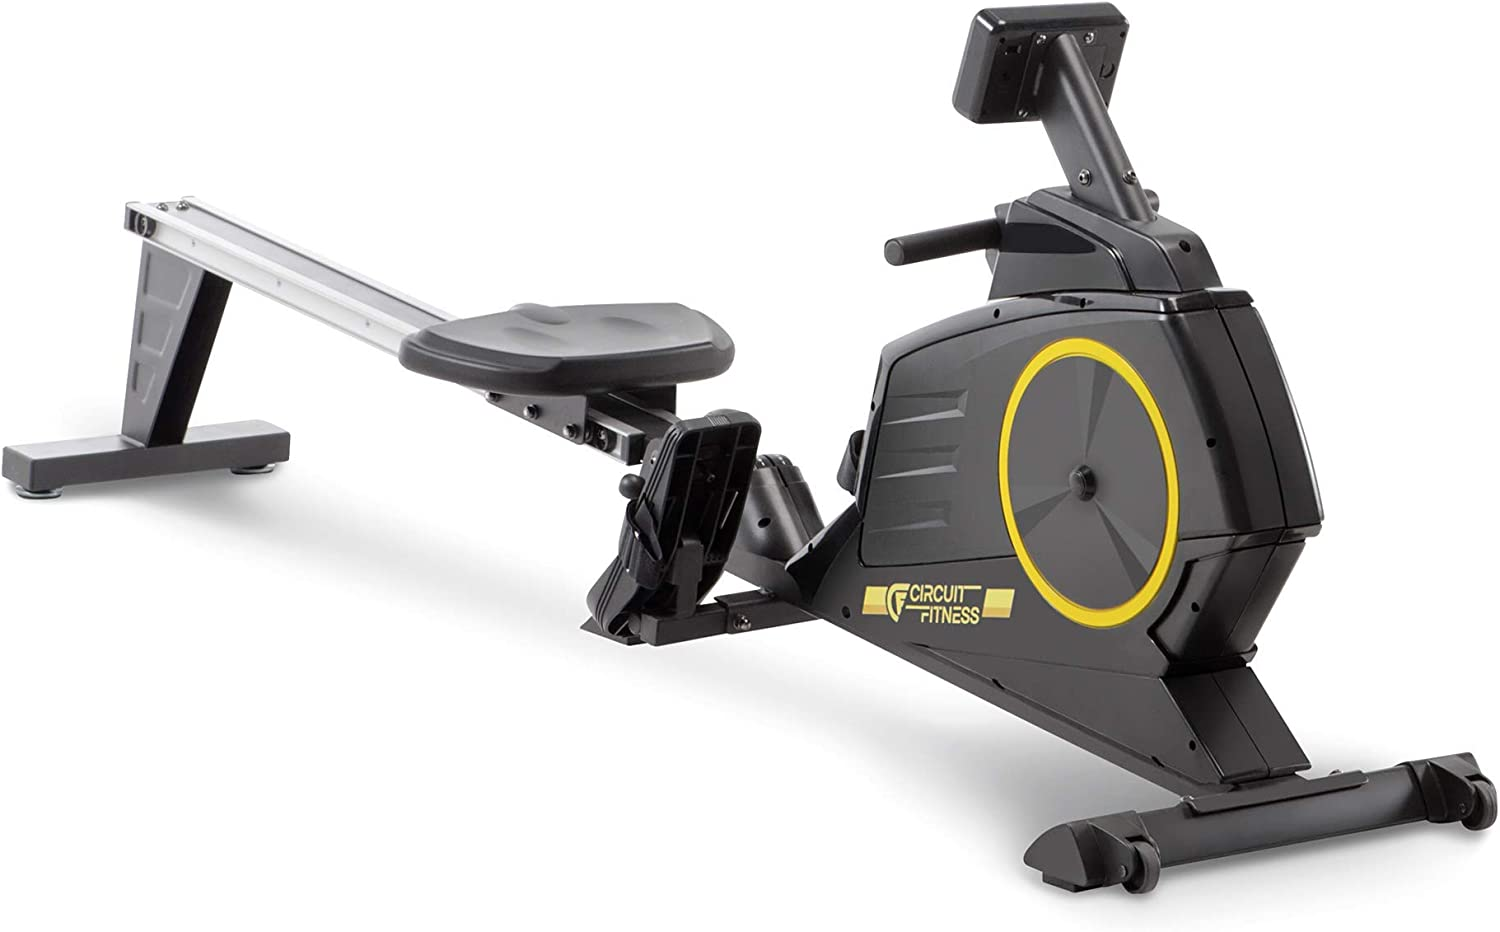 Circuit Fitness Deluxe Foldable Magnetic Rowing Machine - Full View